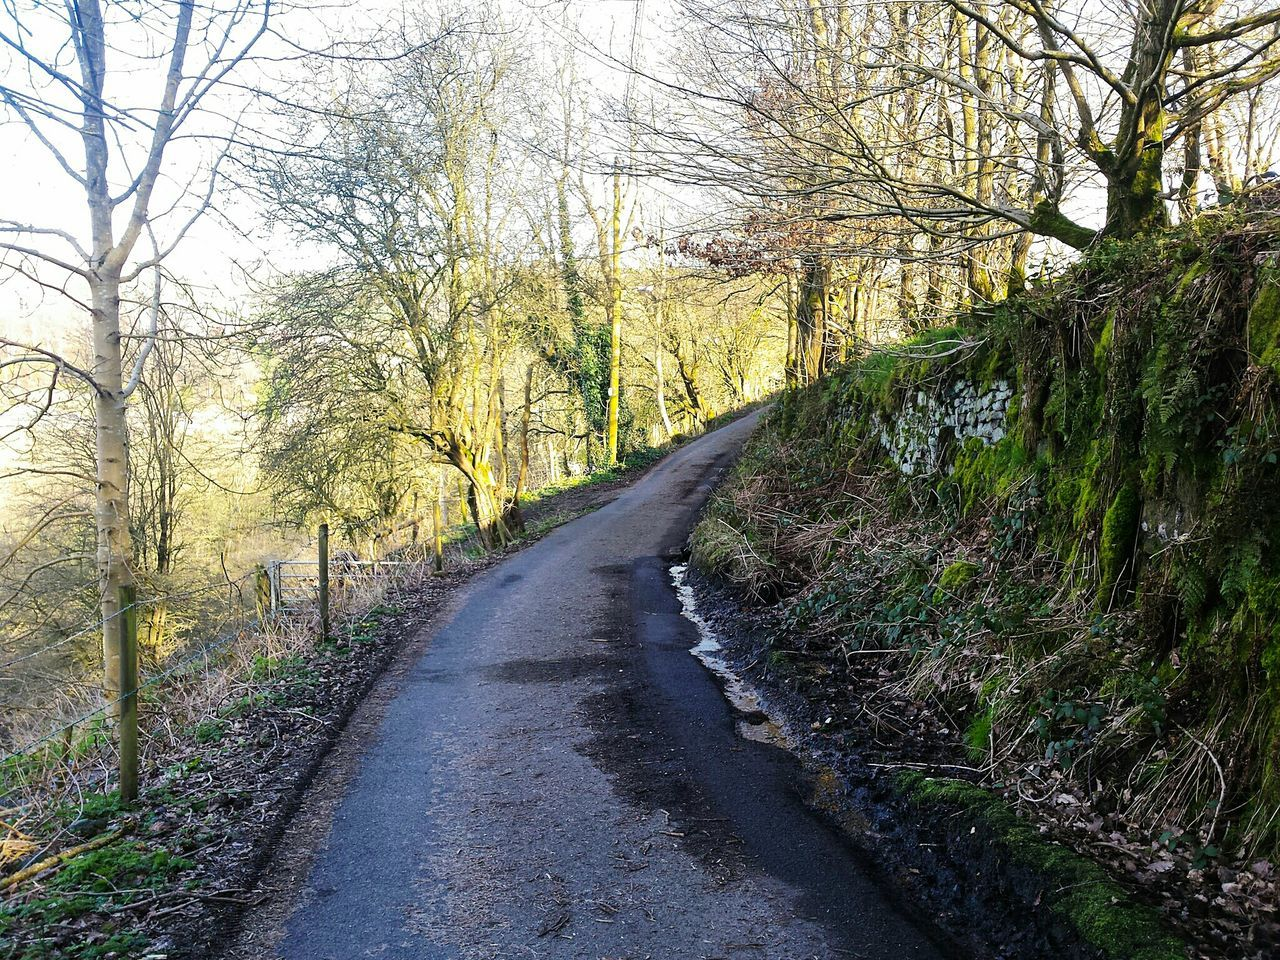 Tree Nature Growth The Way Forward Beauty In Nature Road No People Sunlight Day Transportation Outdoors Tranquility Scenics Green Color Sky Leading Lines Wall Trees Landscapes Calderdale Landscape Yorkshire Countryside Path Road